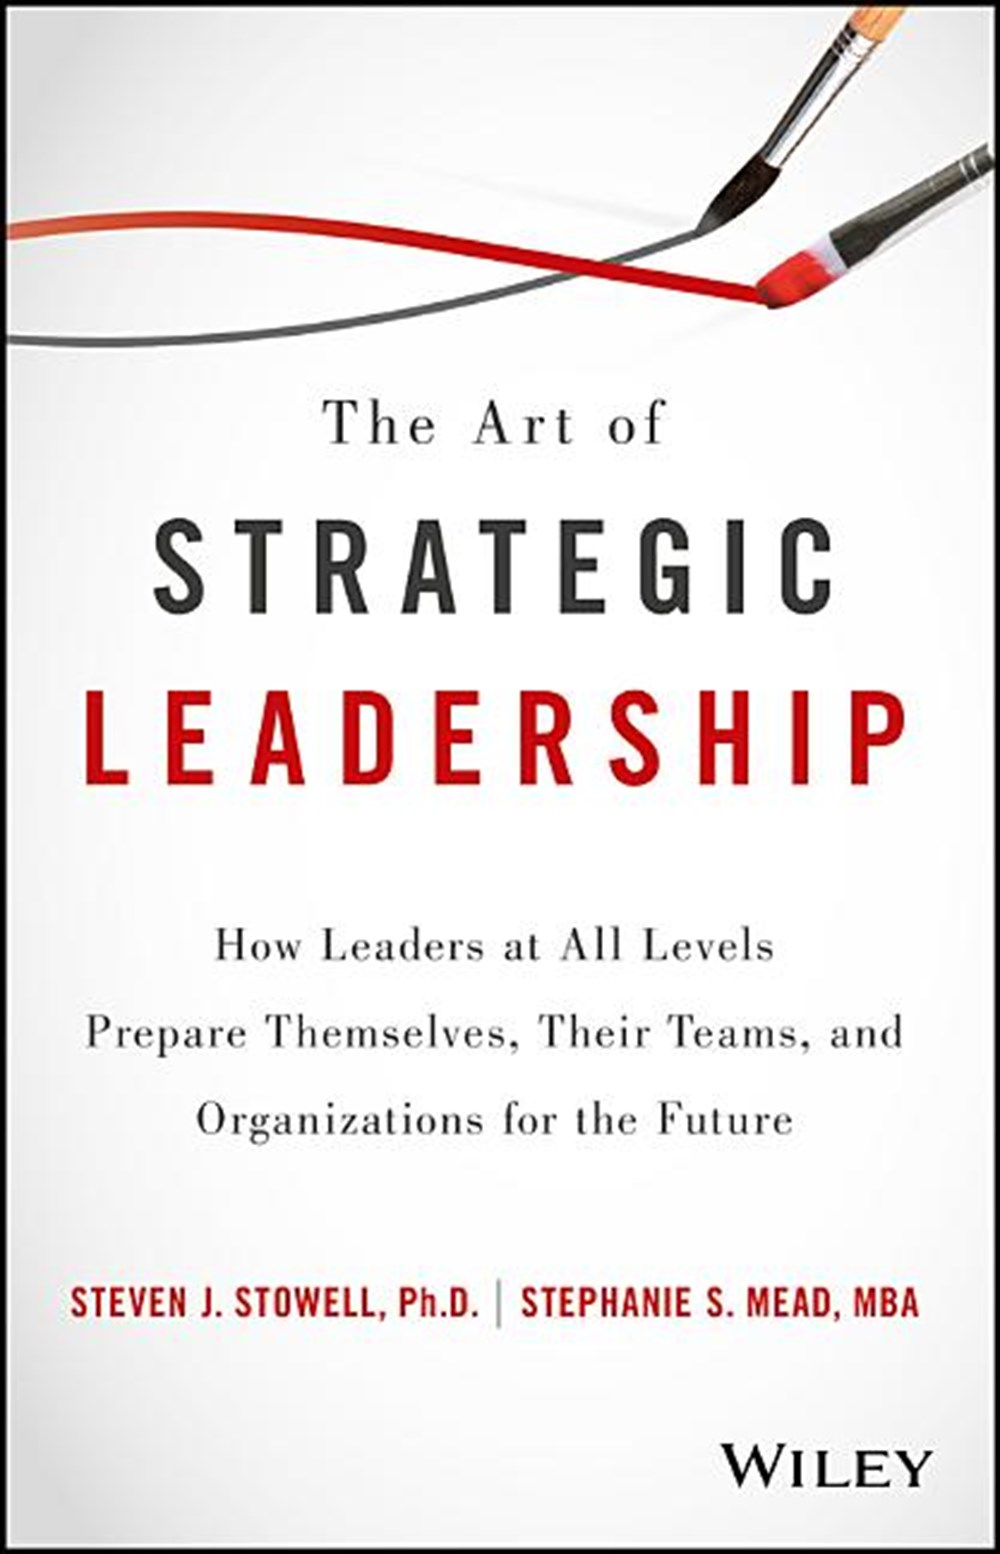 Art of Strategic Leadership: How Leaders at All Levels Prepare Themselves, Their Teams, and Organiza